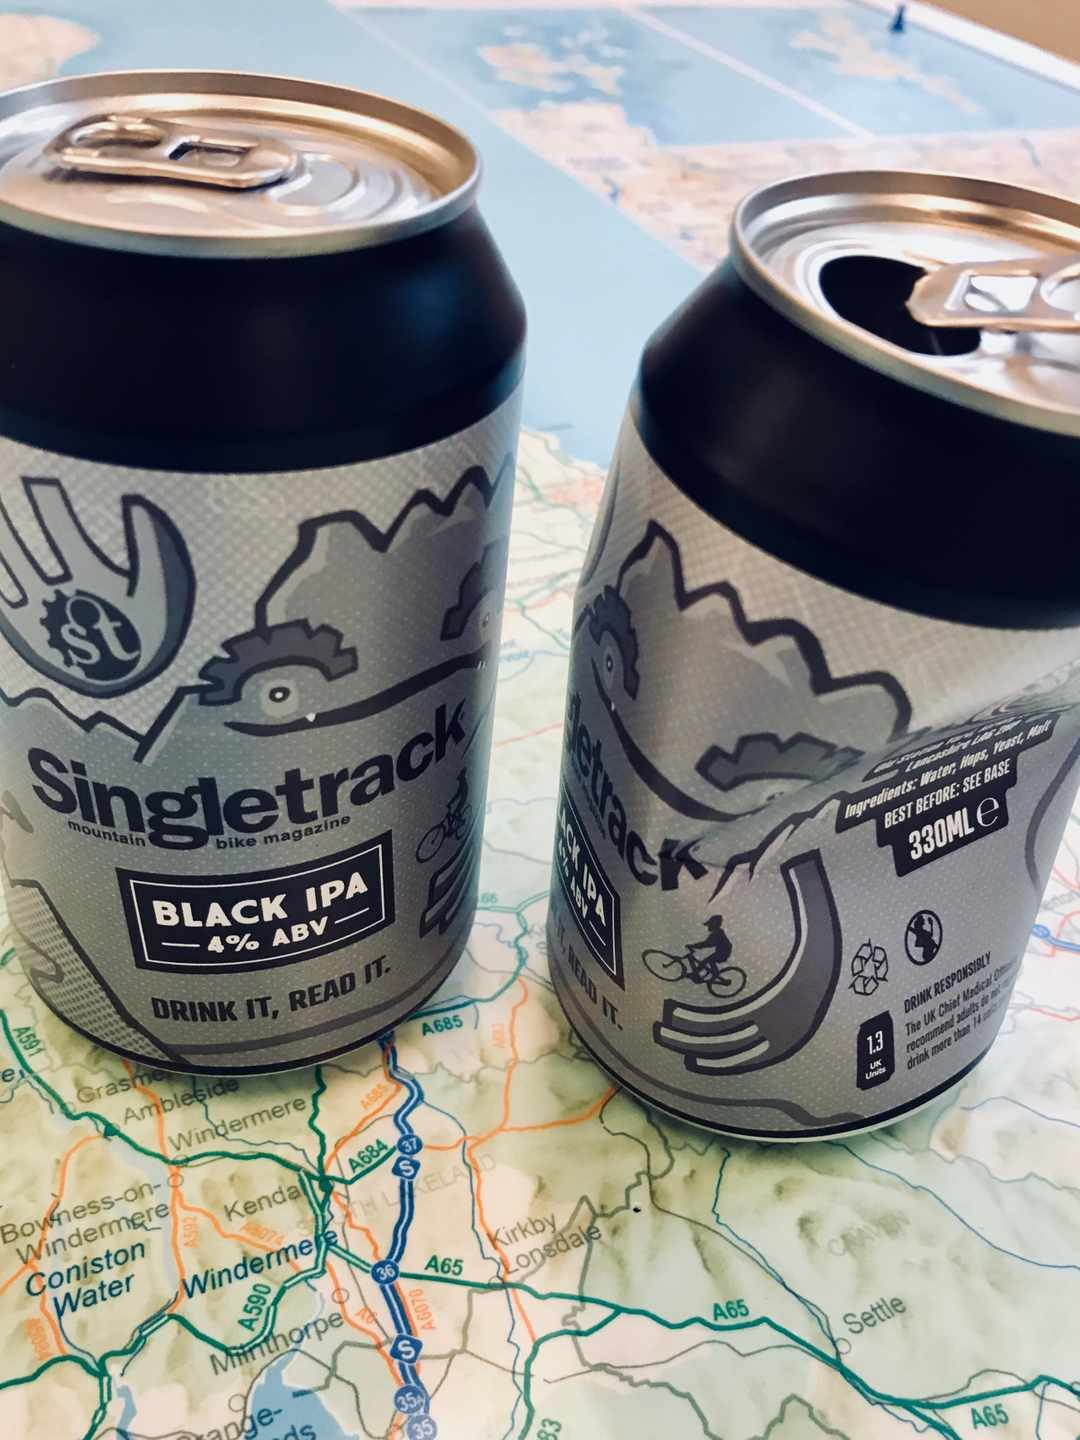 singletrack black ipa beer can merch shop membership